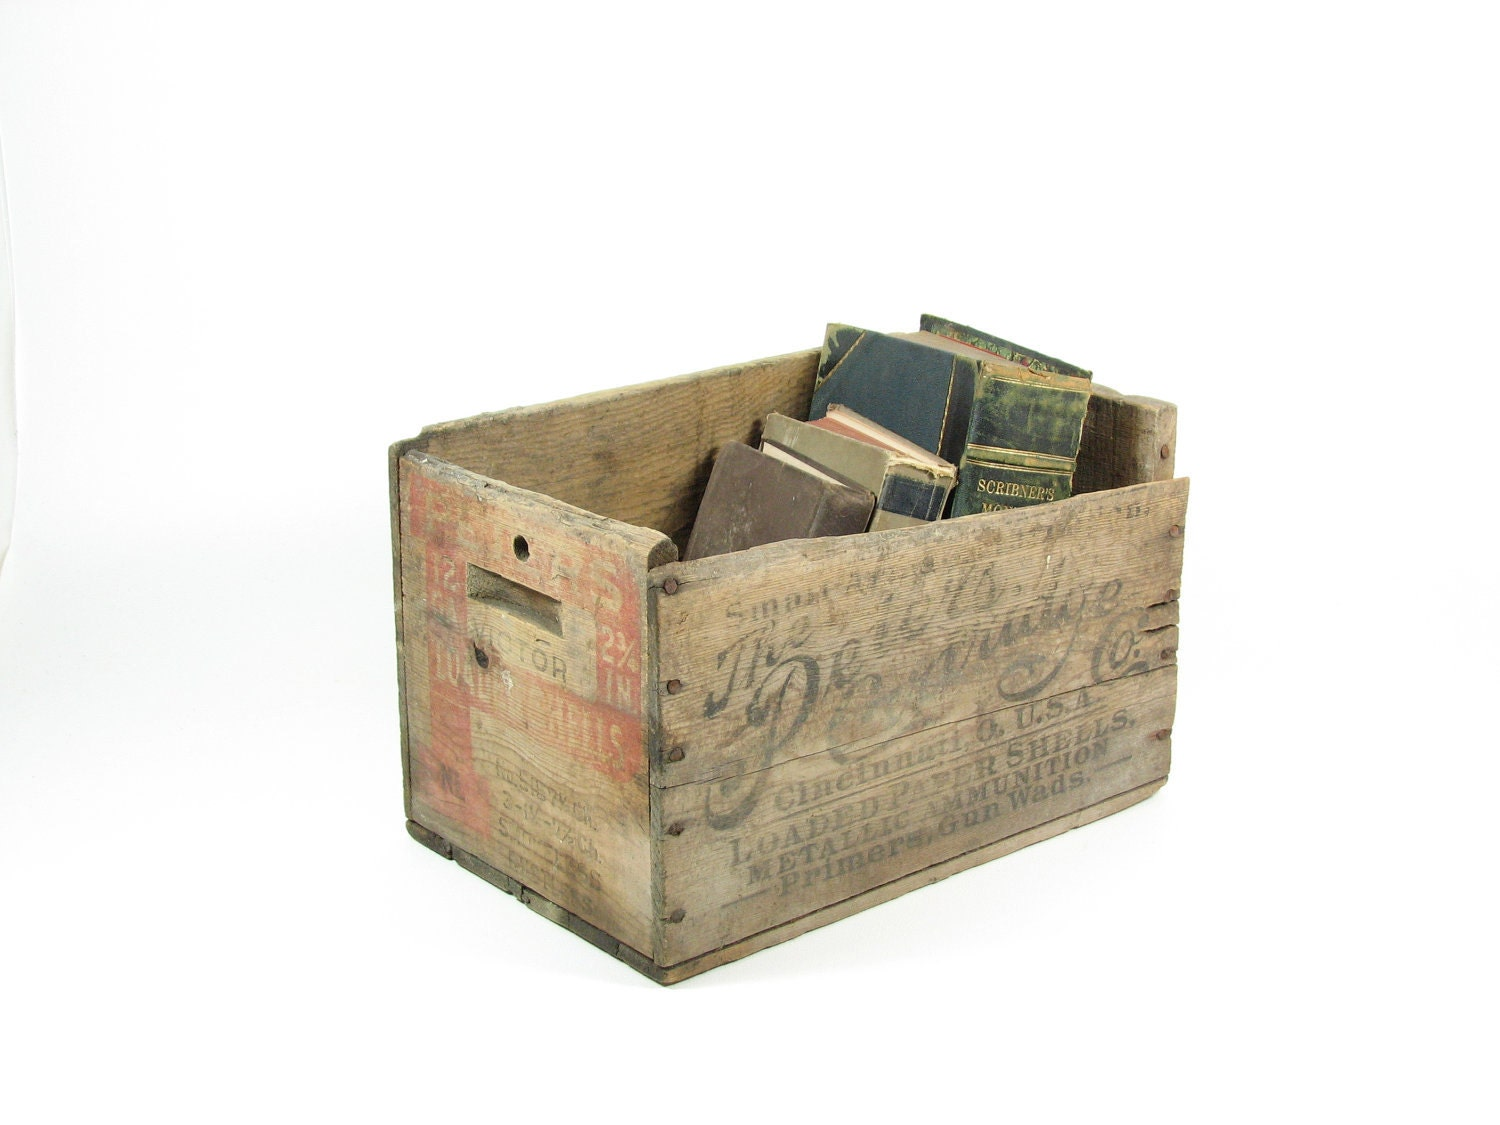 Vintage Wood Crate Wooden Box Ammo Crate Peters Cartridge Co